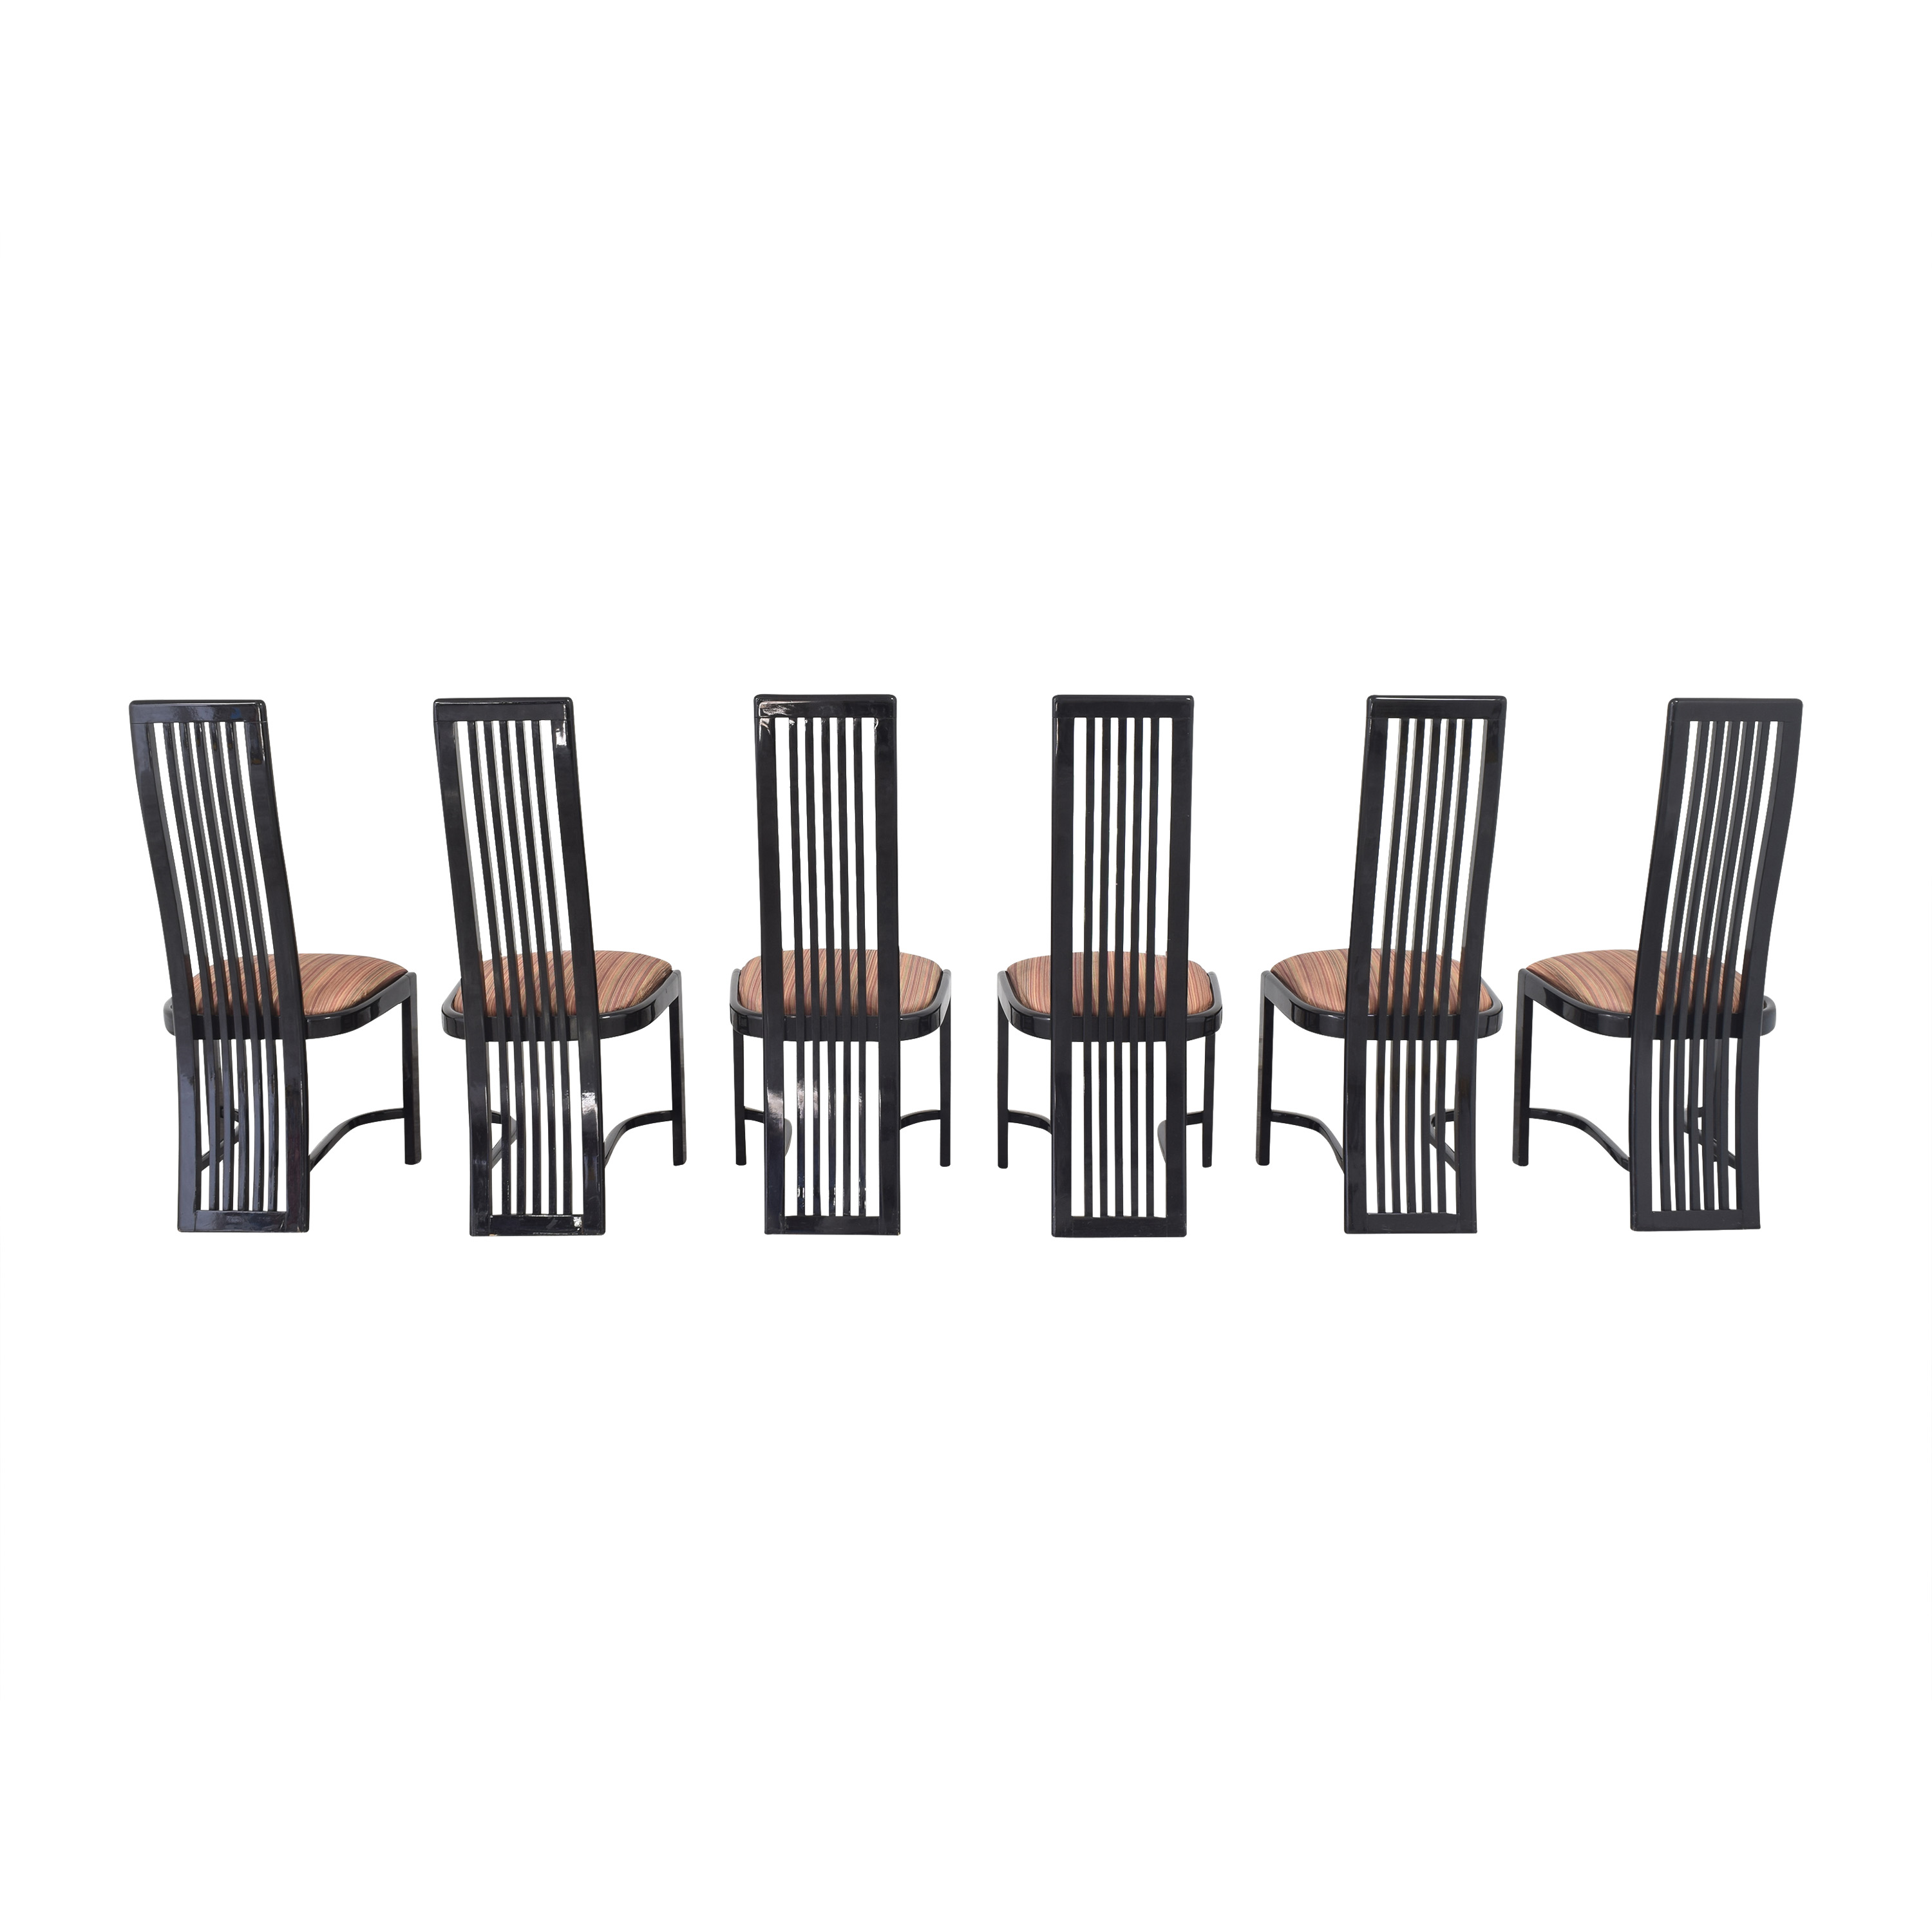 Italian-Style High Back Dining Chairs